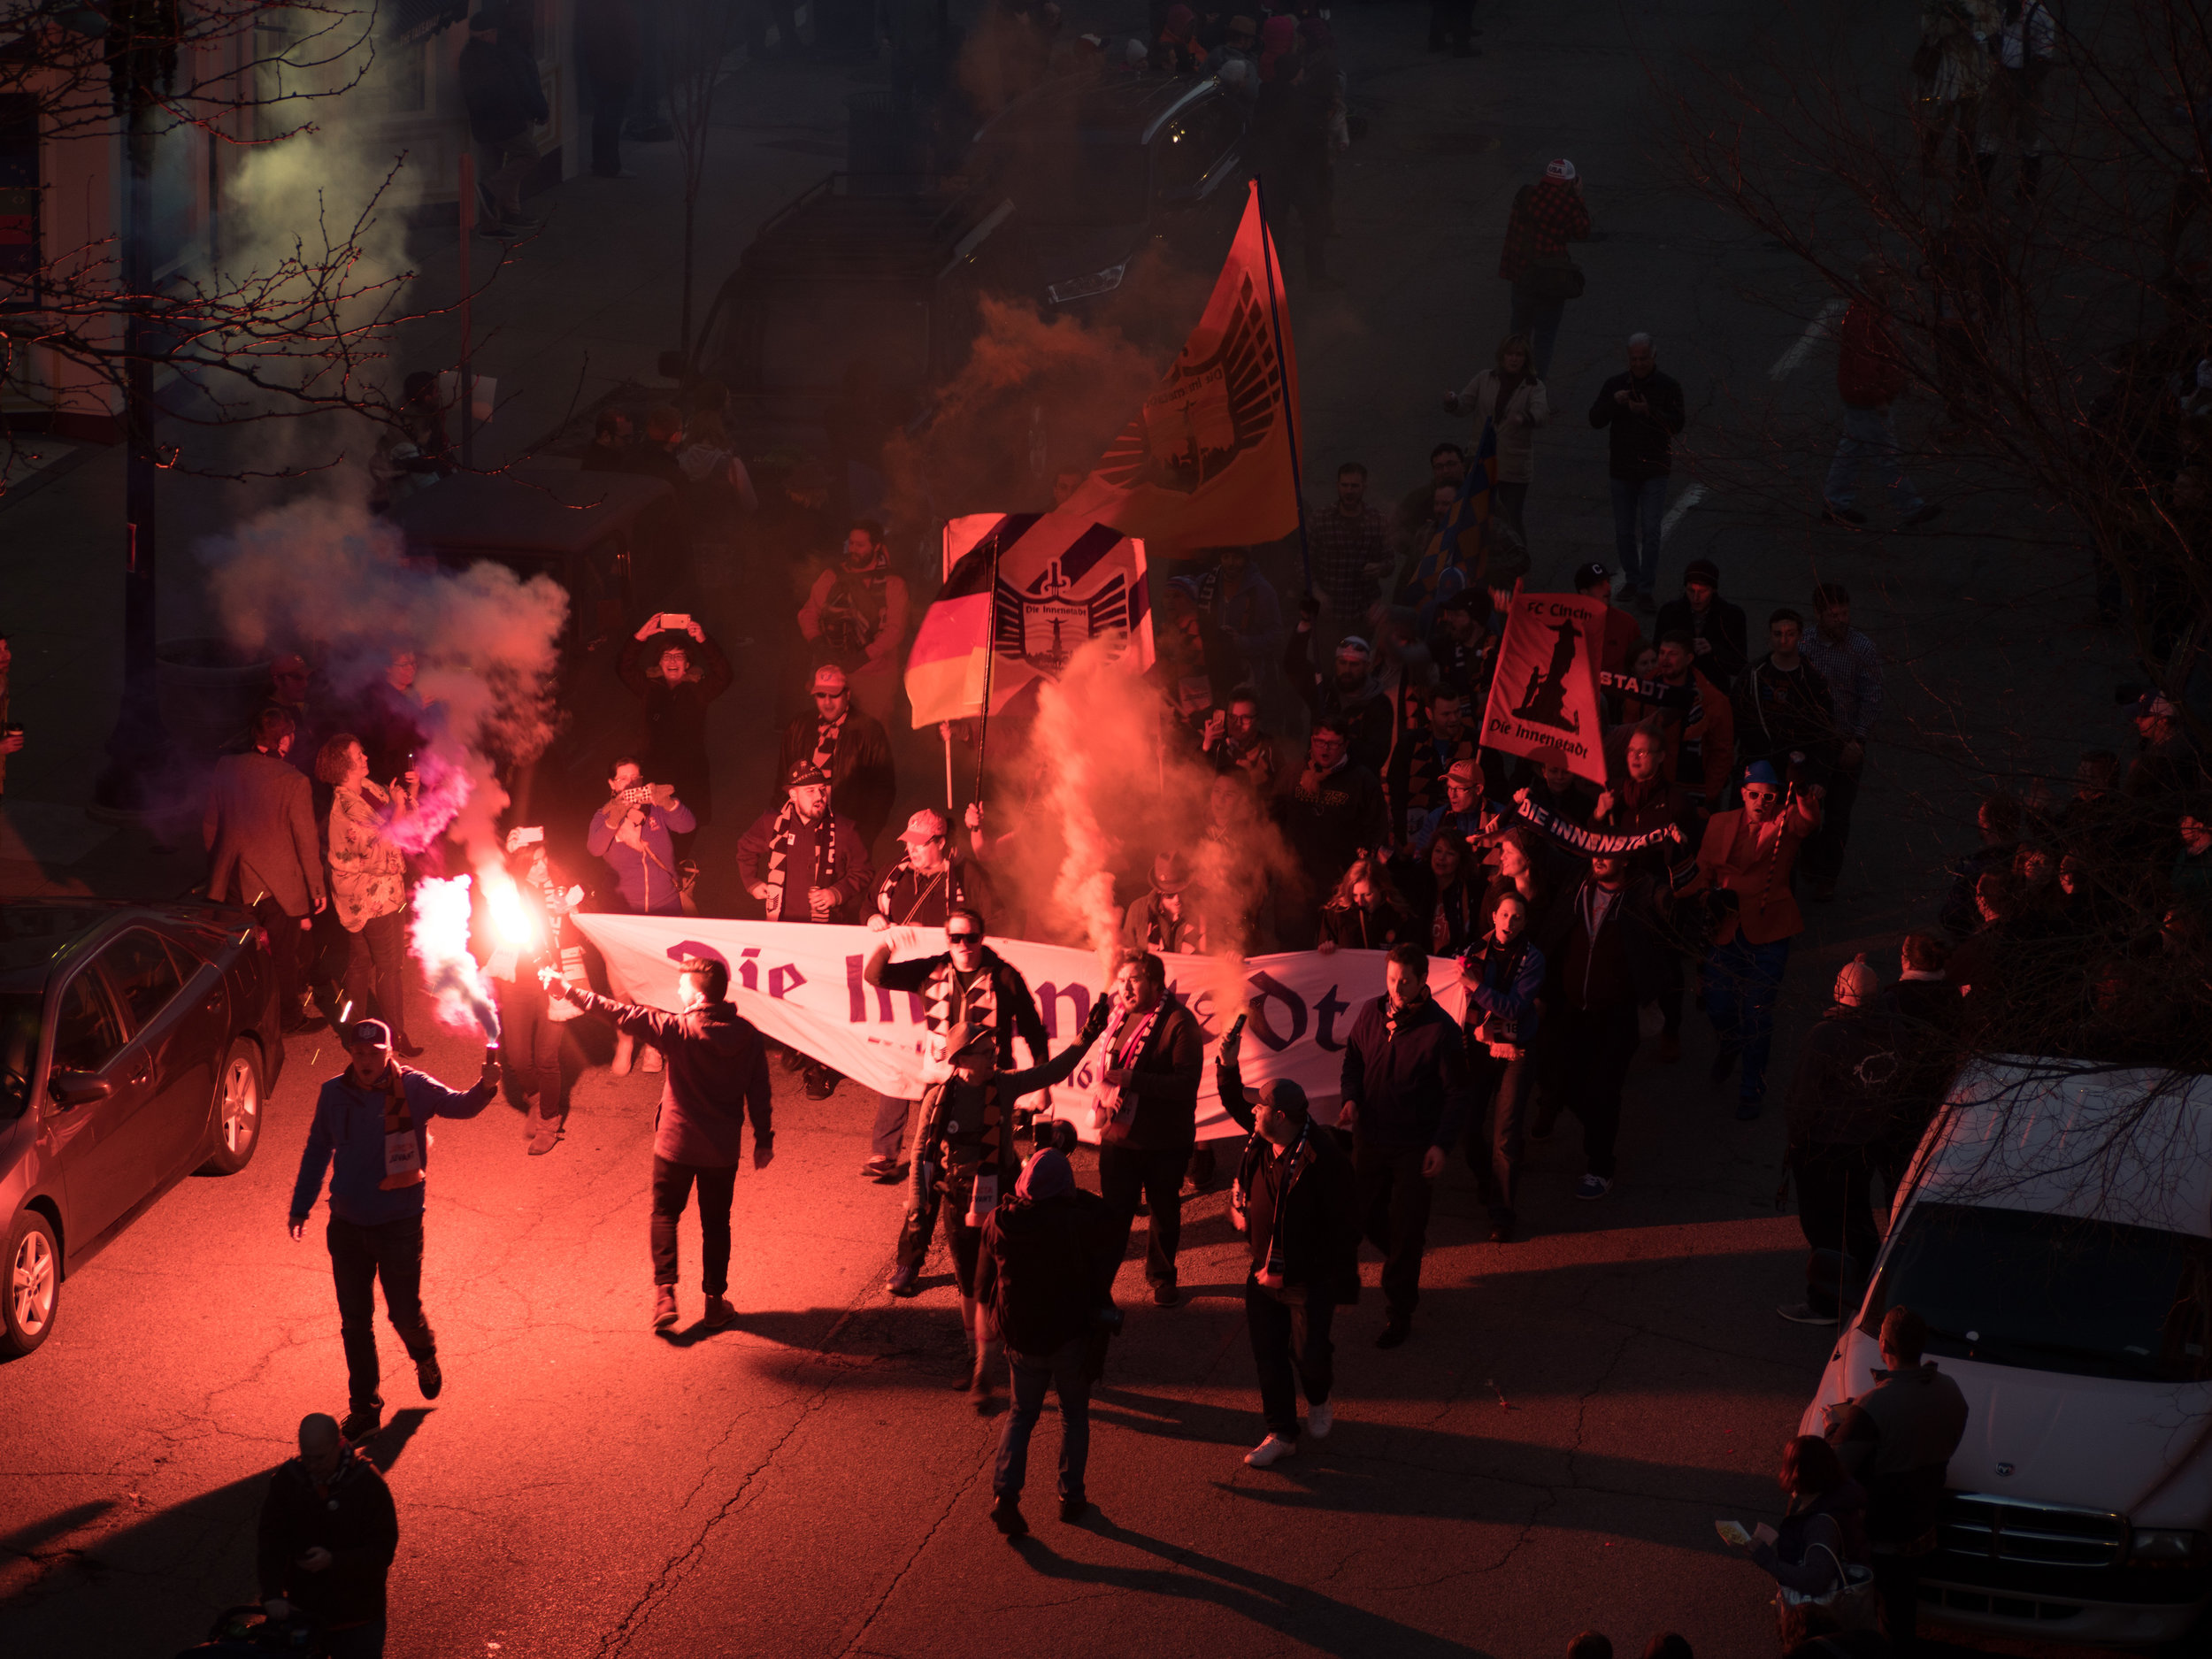 Smoke & Flares during the march in the Bockfest Parade, 03/02/2018